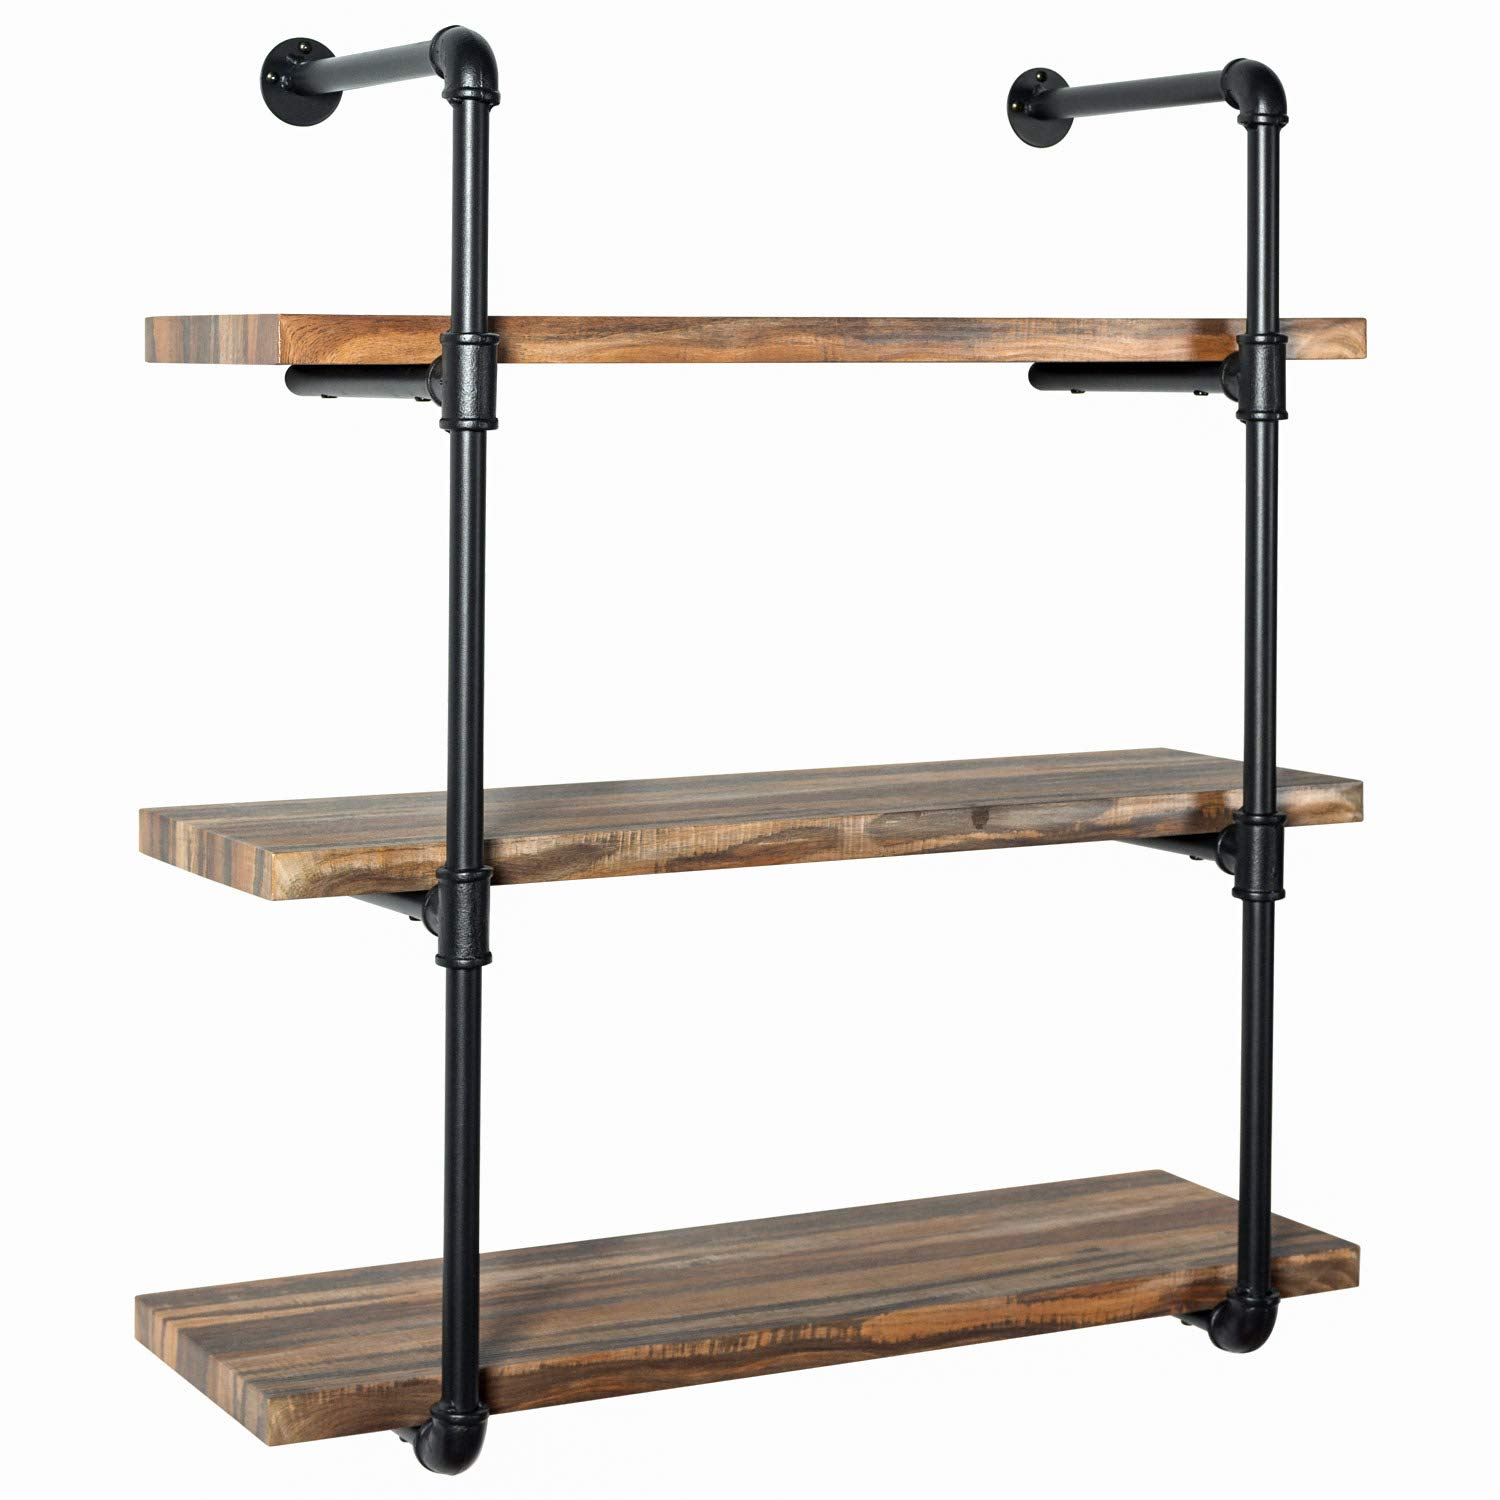 IRONCK Industrial Shelving Pipe Shelf 3-Tier, Wood and Metal Frame, Rustic Home Decor Wall Decor, Wall Shelves for Bedroom, Bathroom, Kitchen